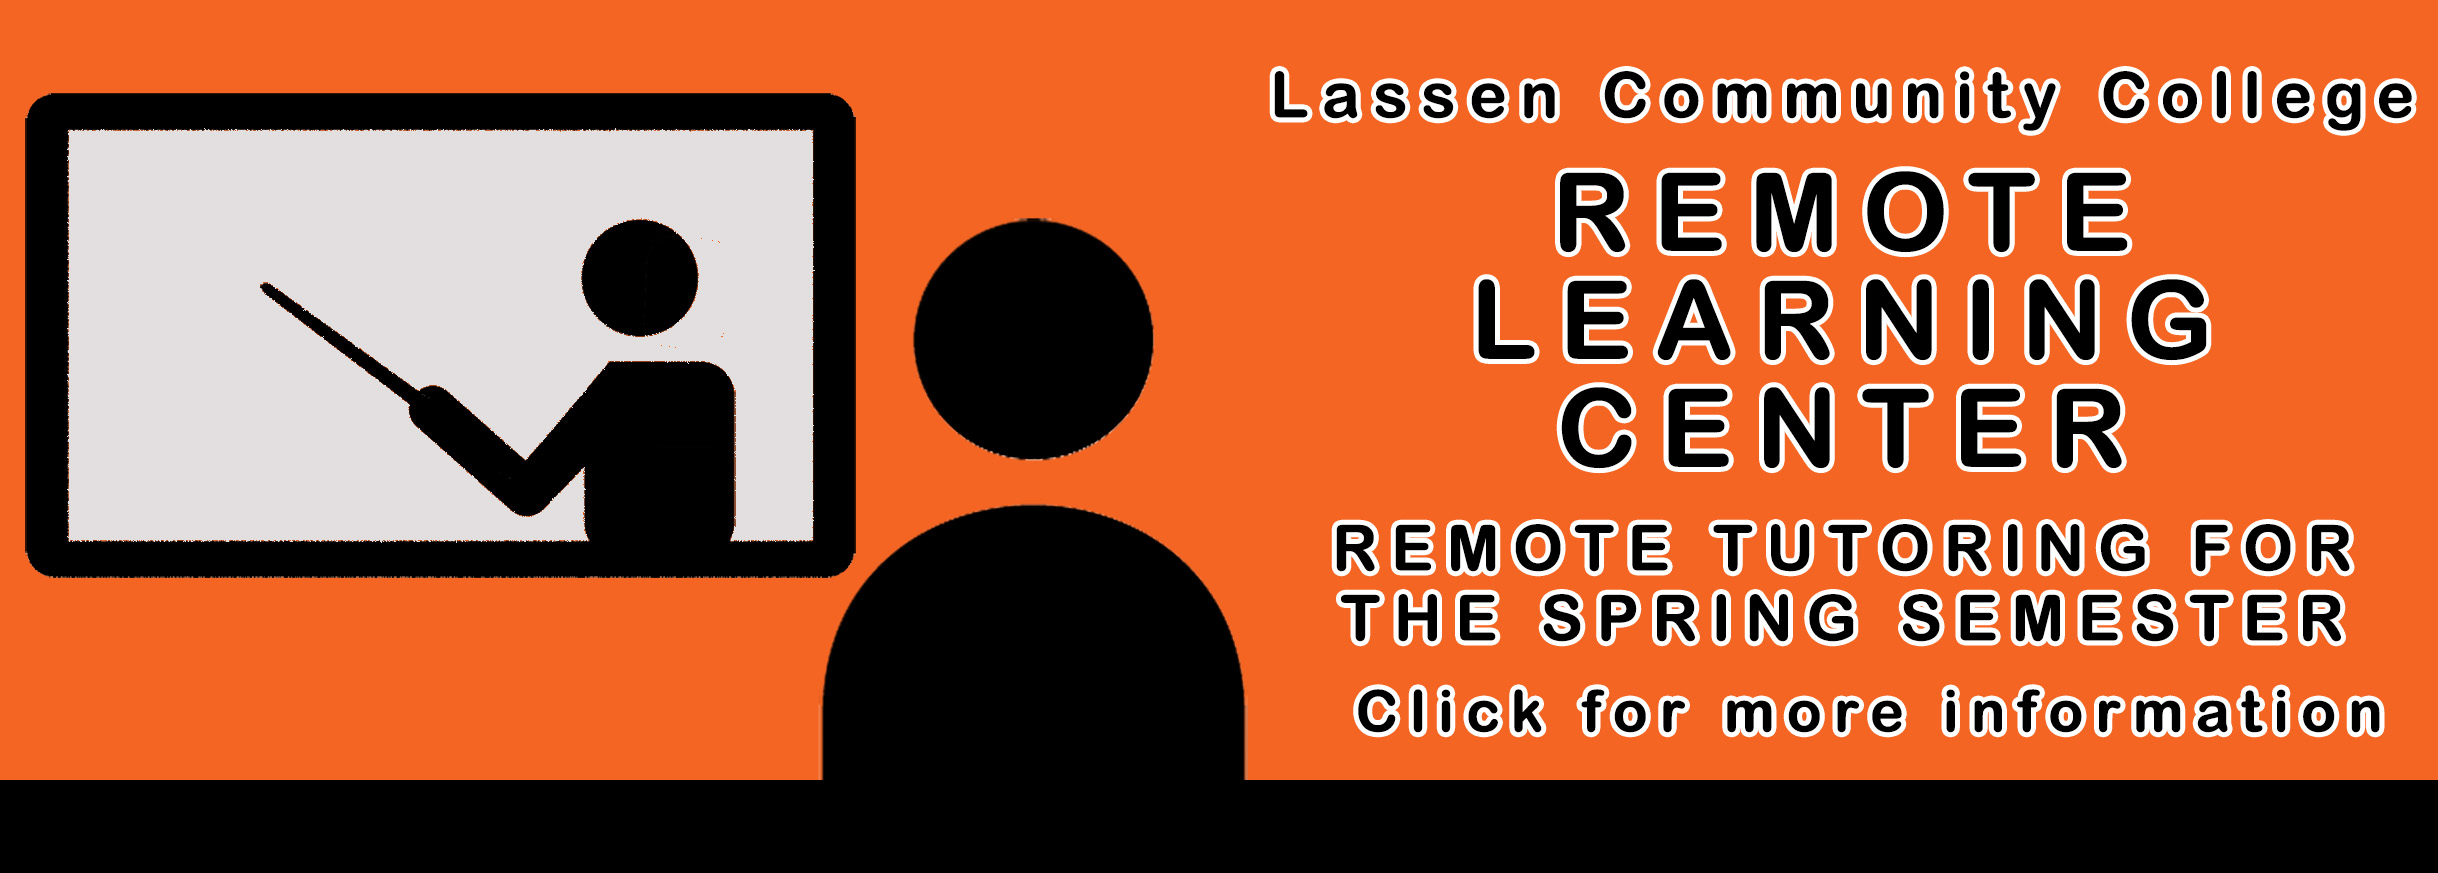 Remote Learning Center